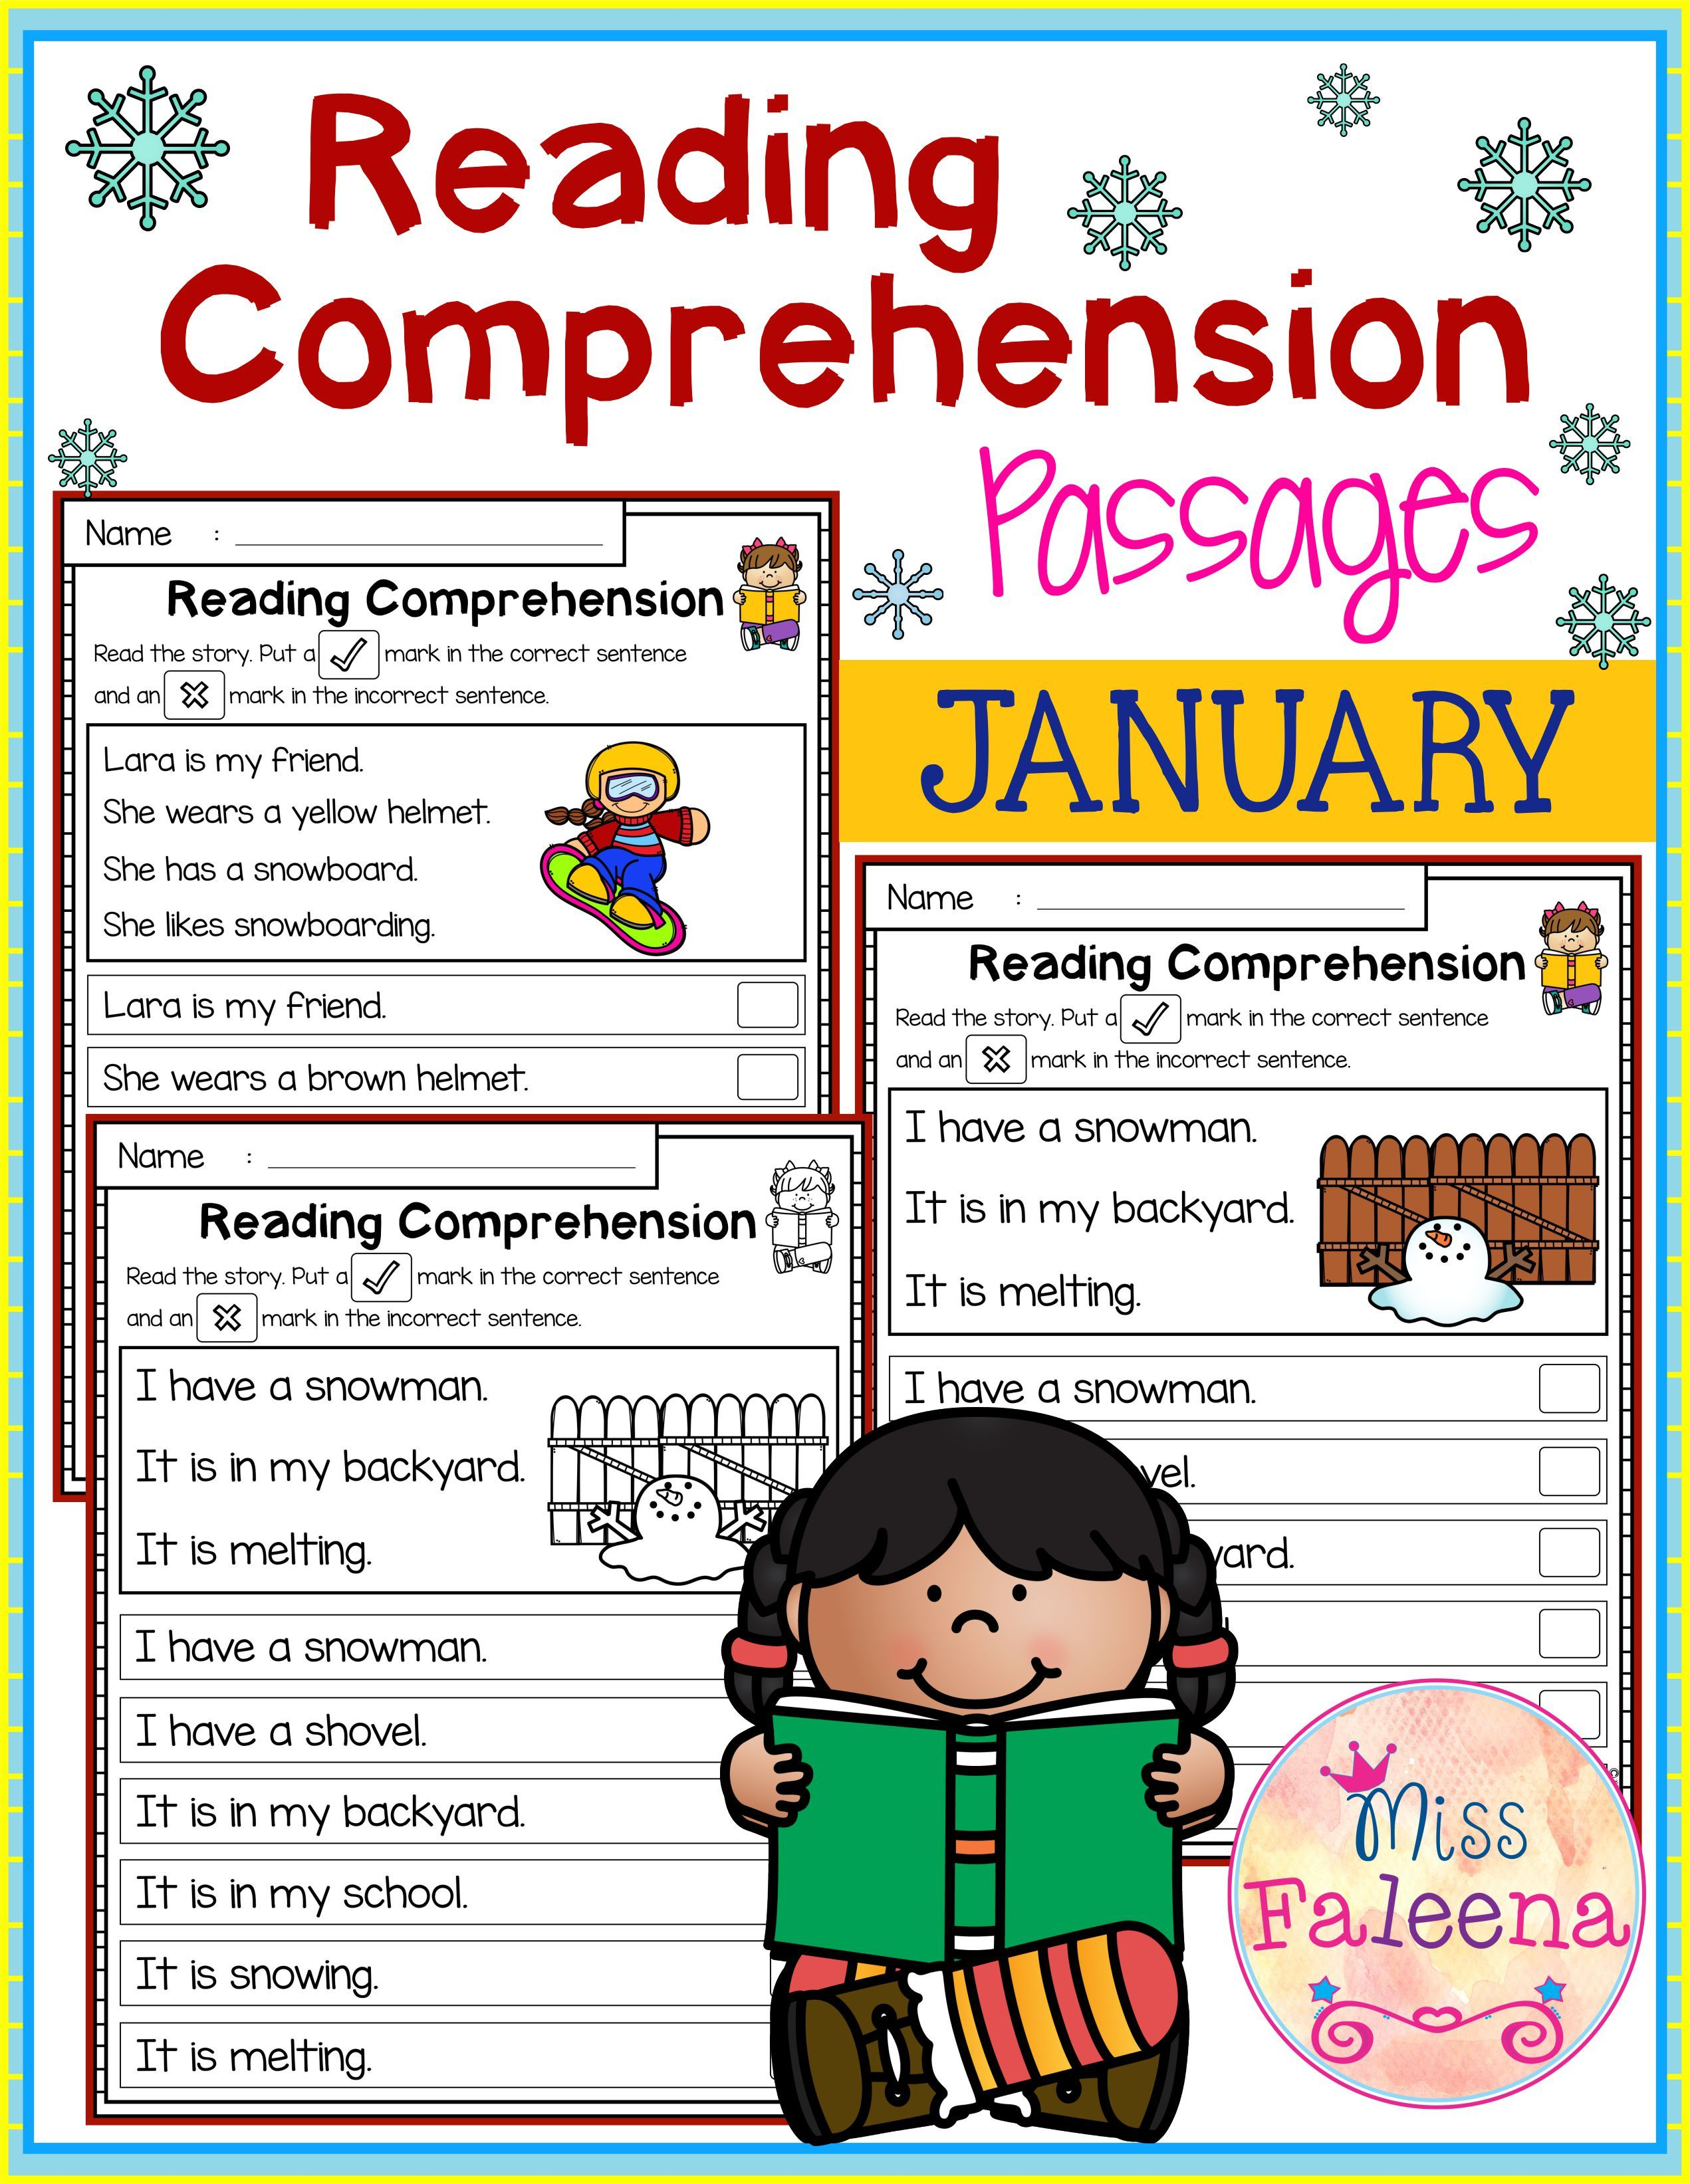 January Reading Comprehension Passages With Images